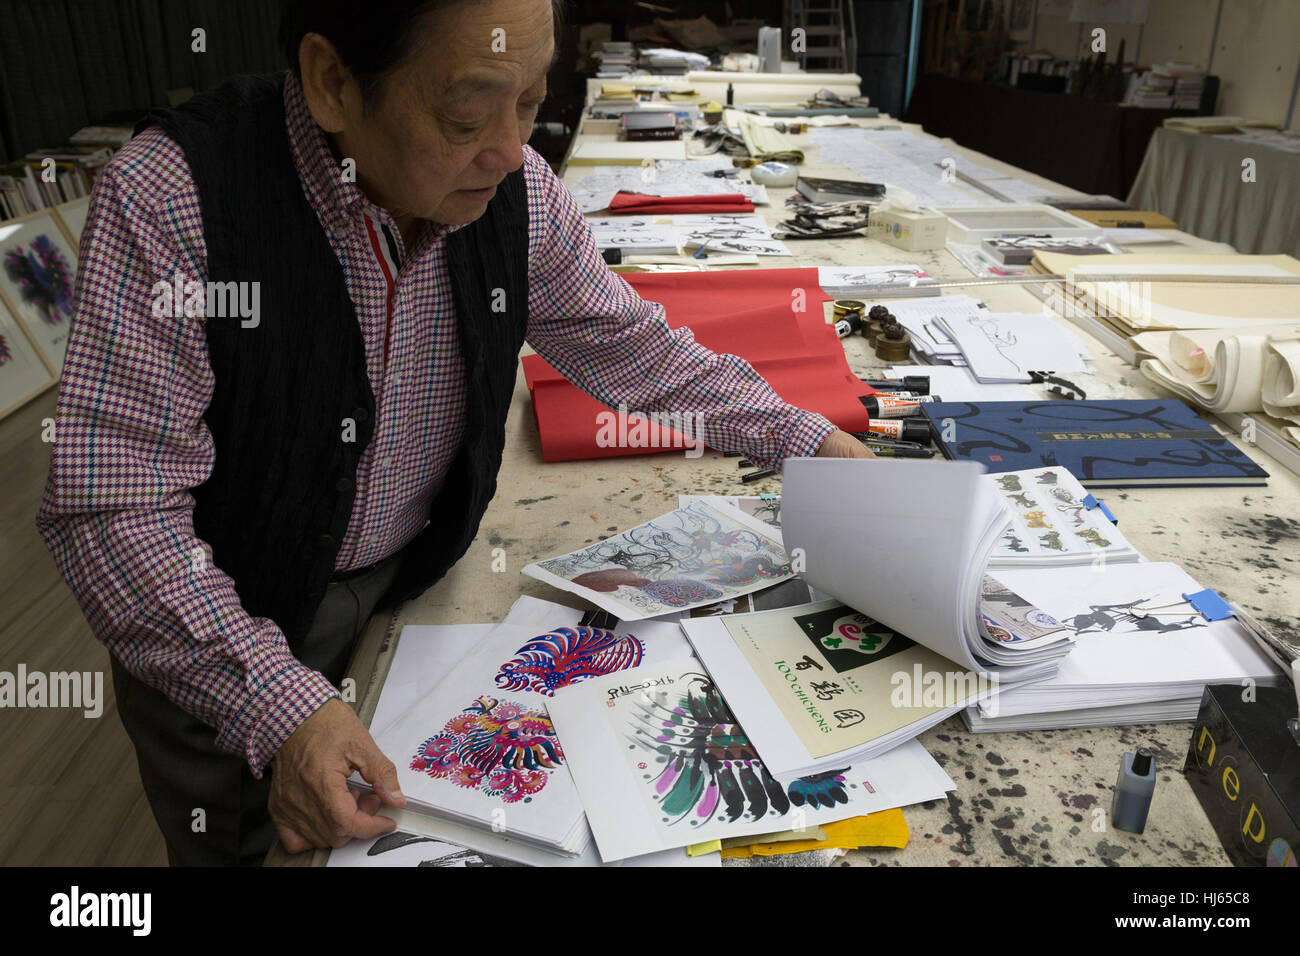 (170126) -- BEIJING, Jan. 26, 2017 (Xinhua) -- Chinese artist Han Meilin, 80, shows his sketches of roosters and - Stock Image